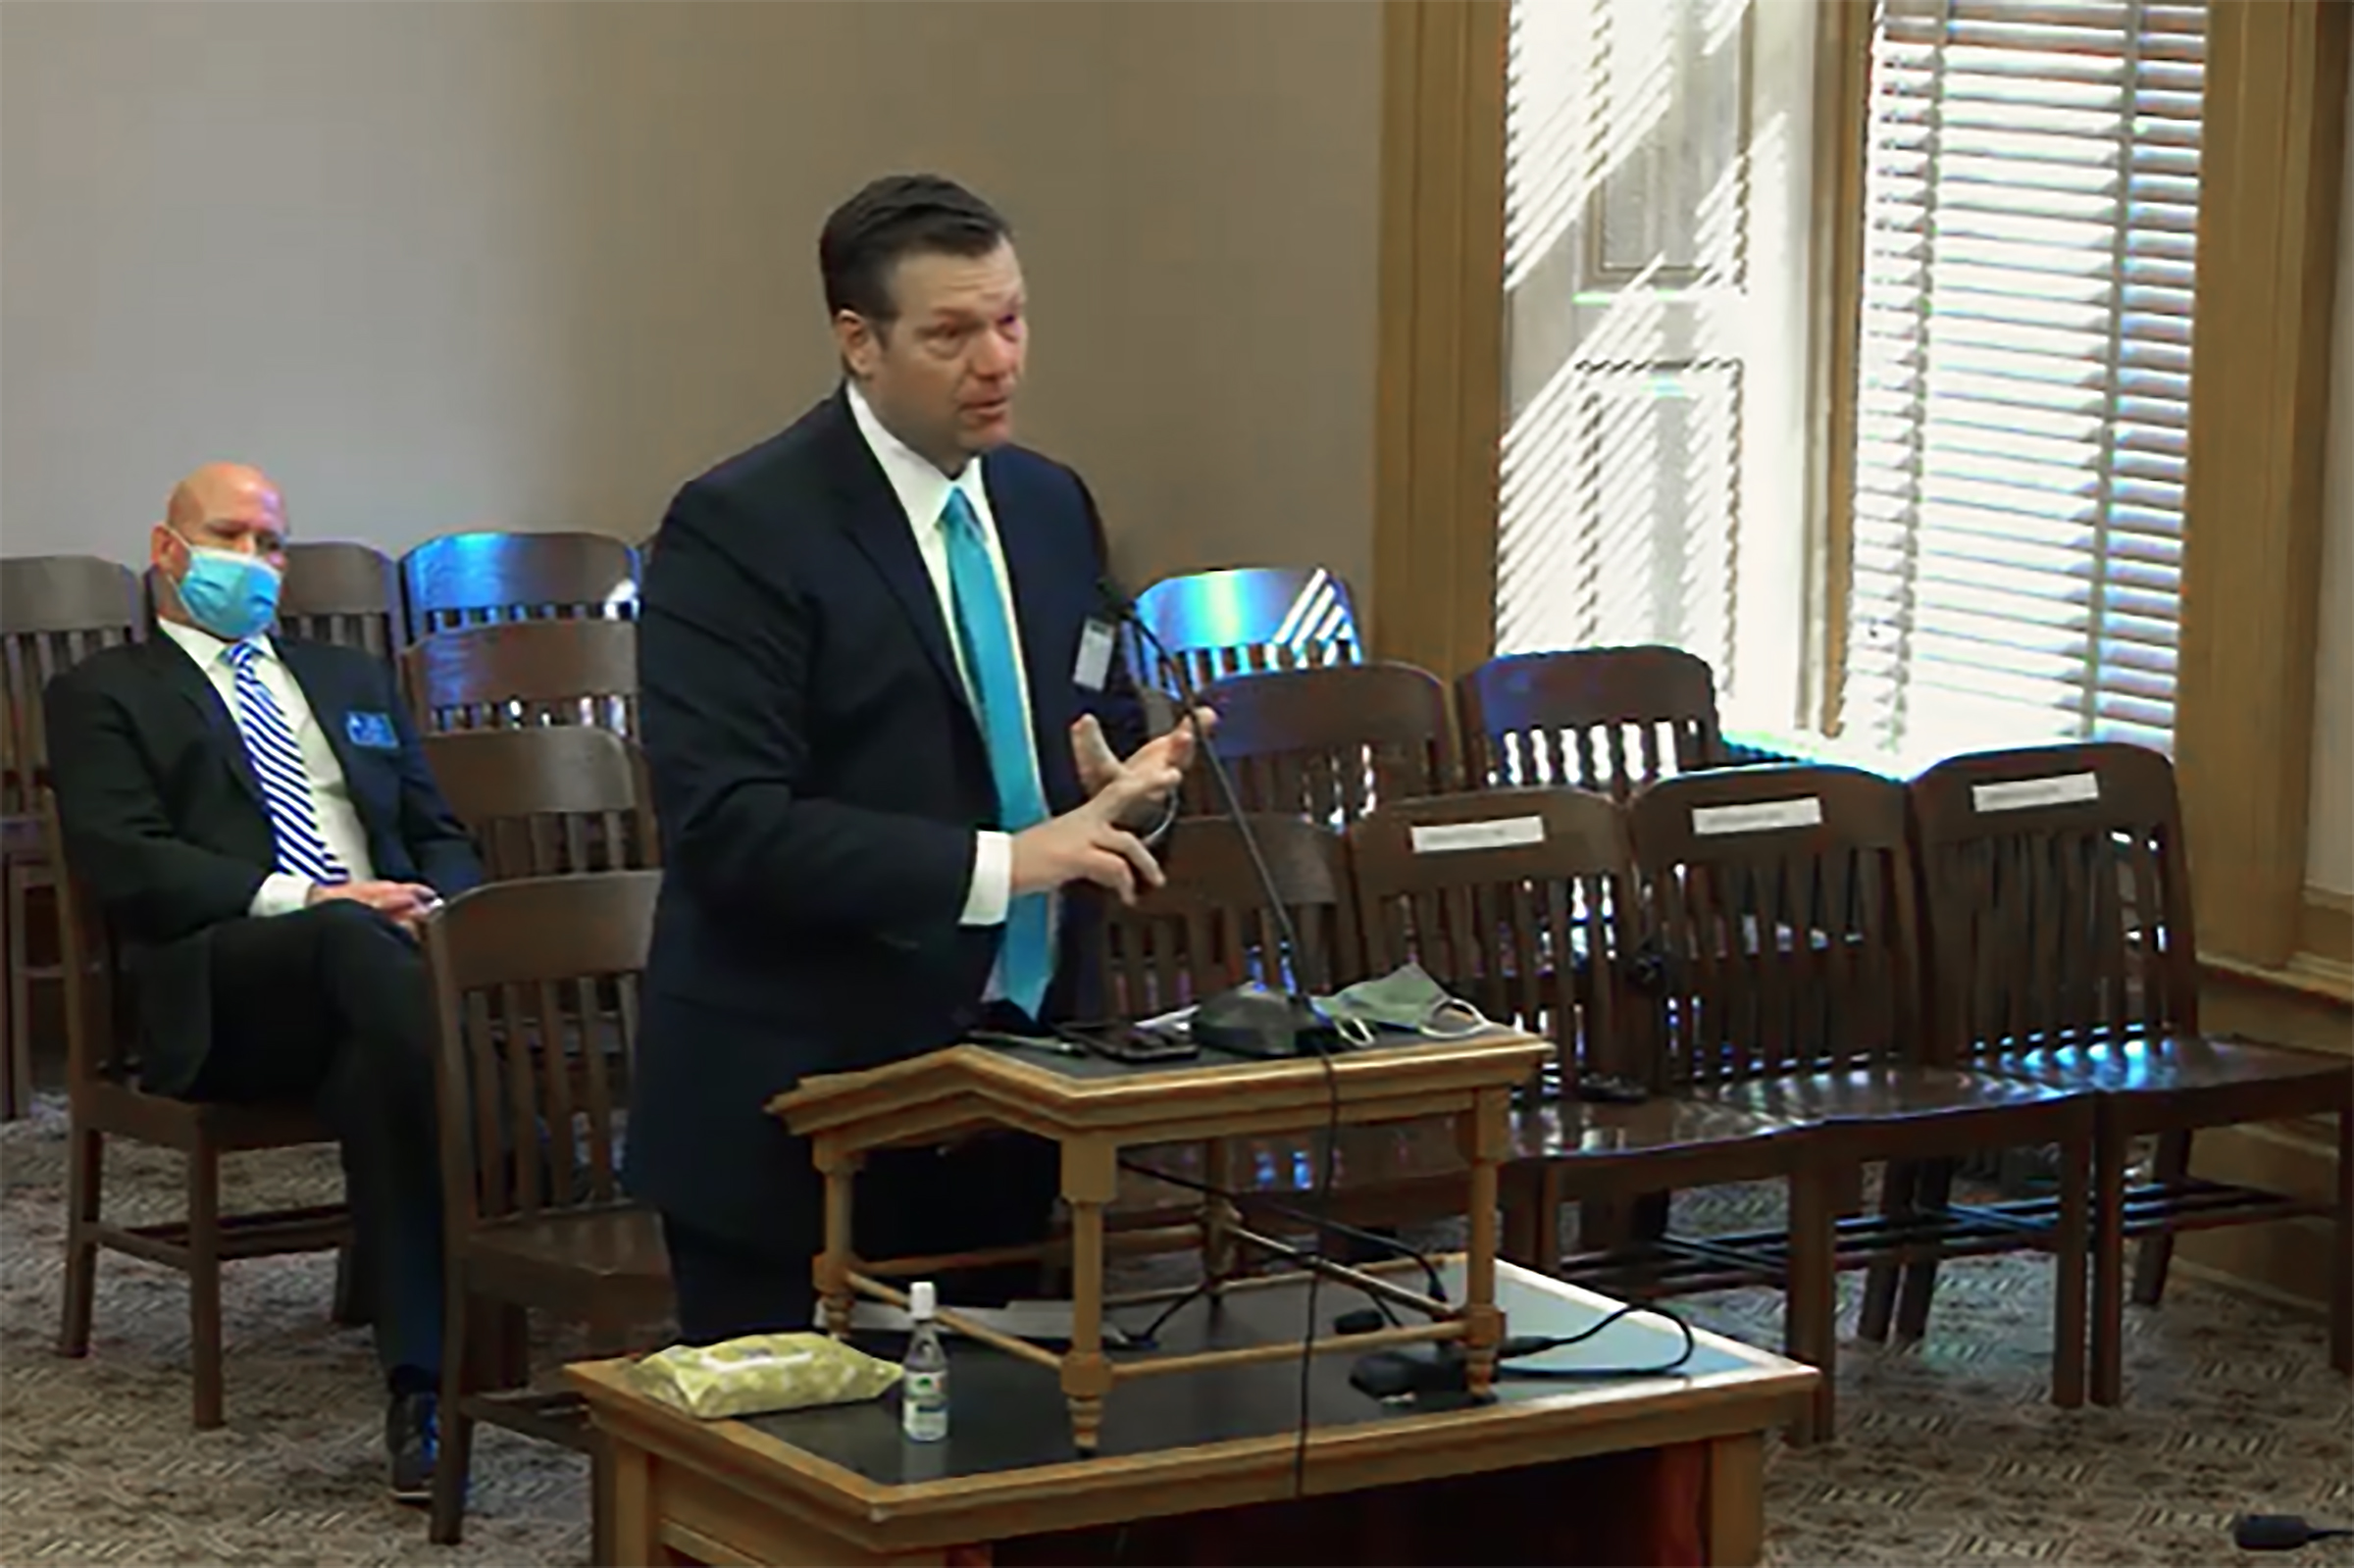 Kobach meets with Pennsylvania Republicans to talk election, immigration policy